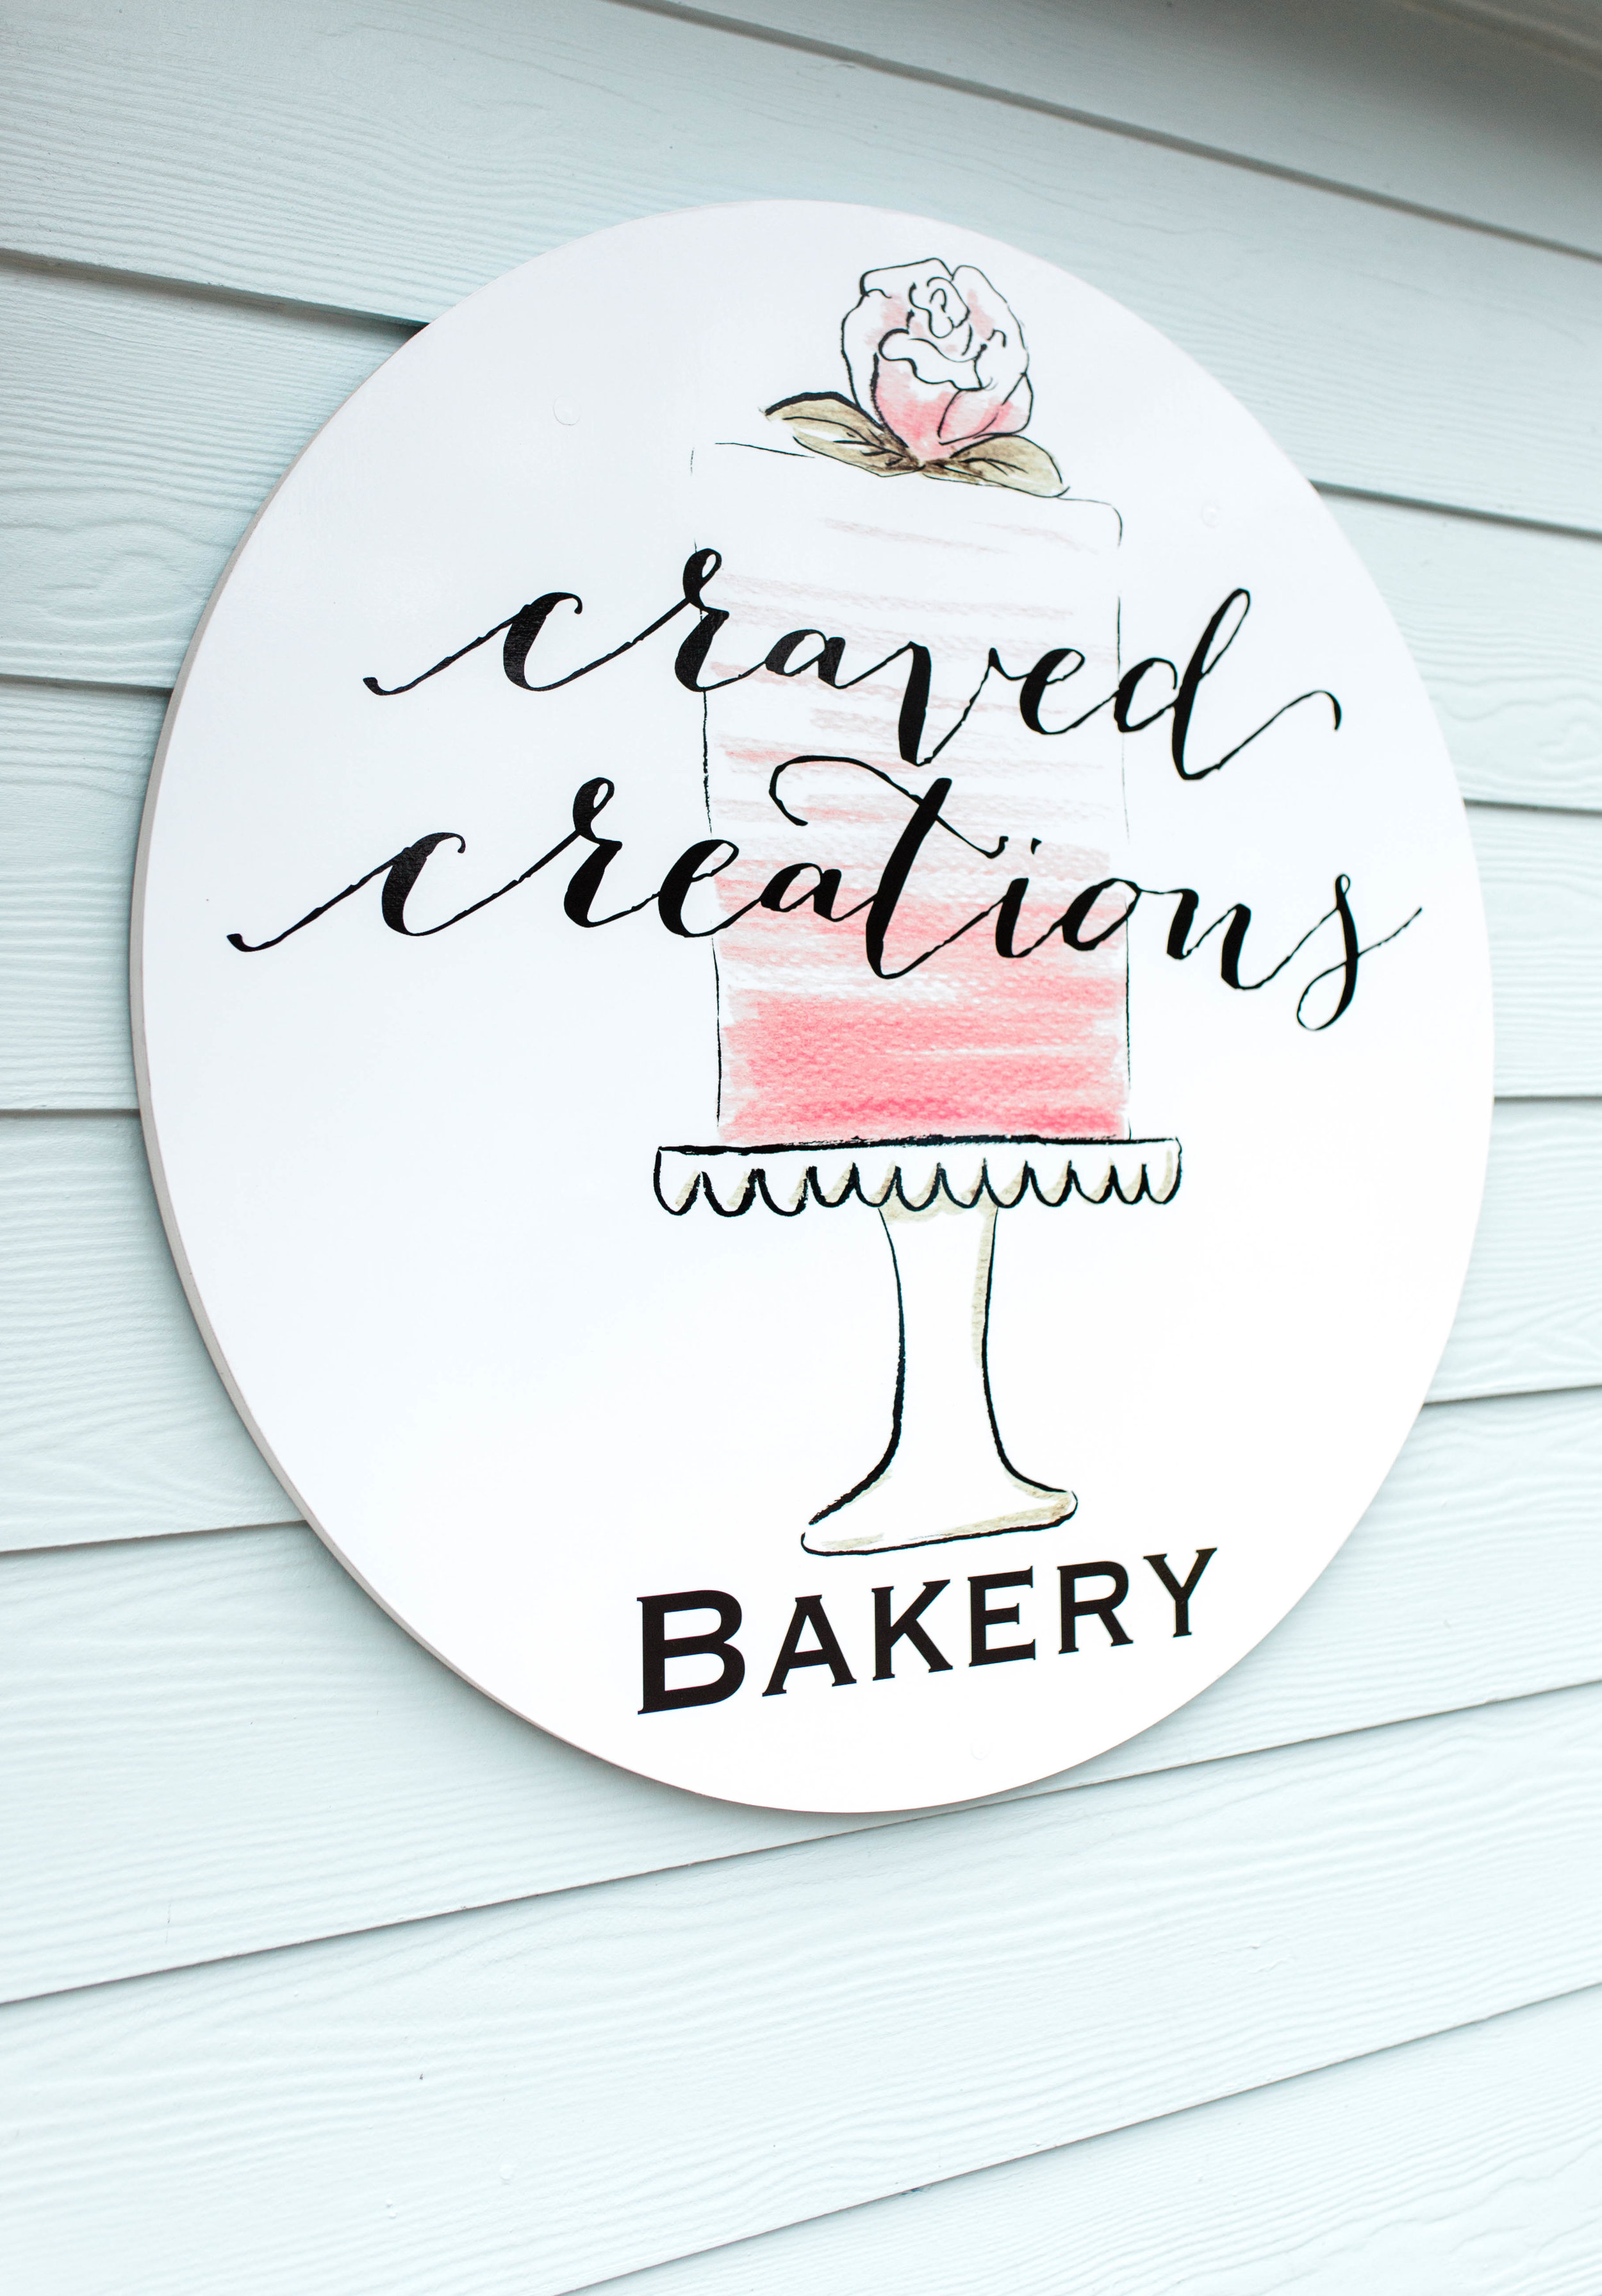 Craved Creations grand opening-7933.jpg